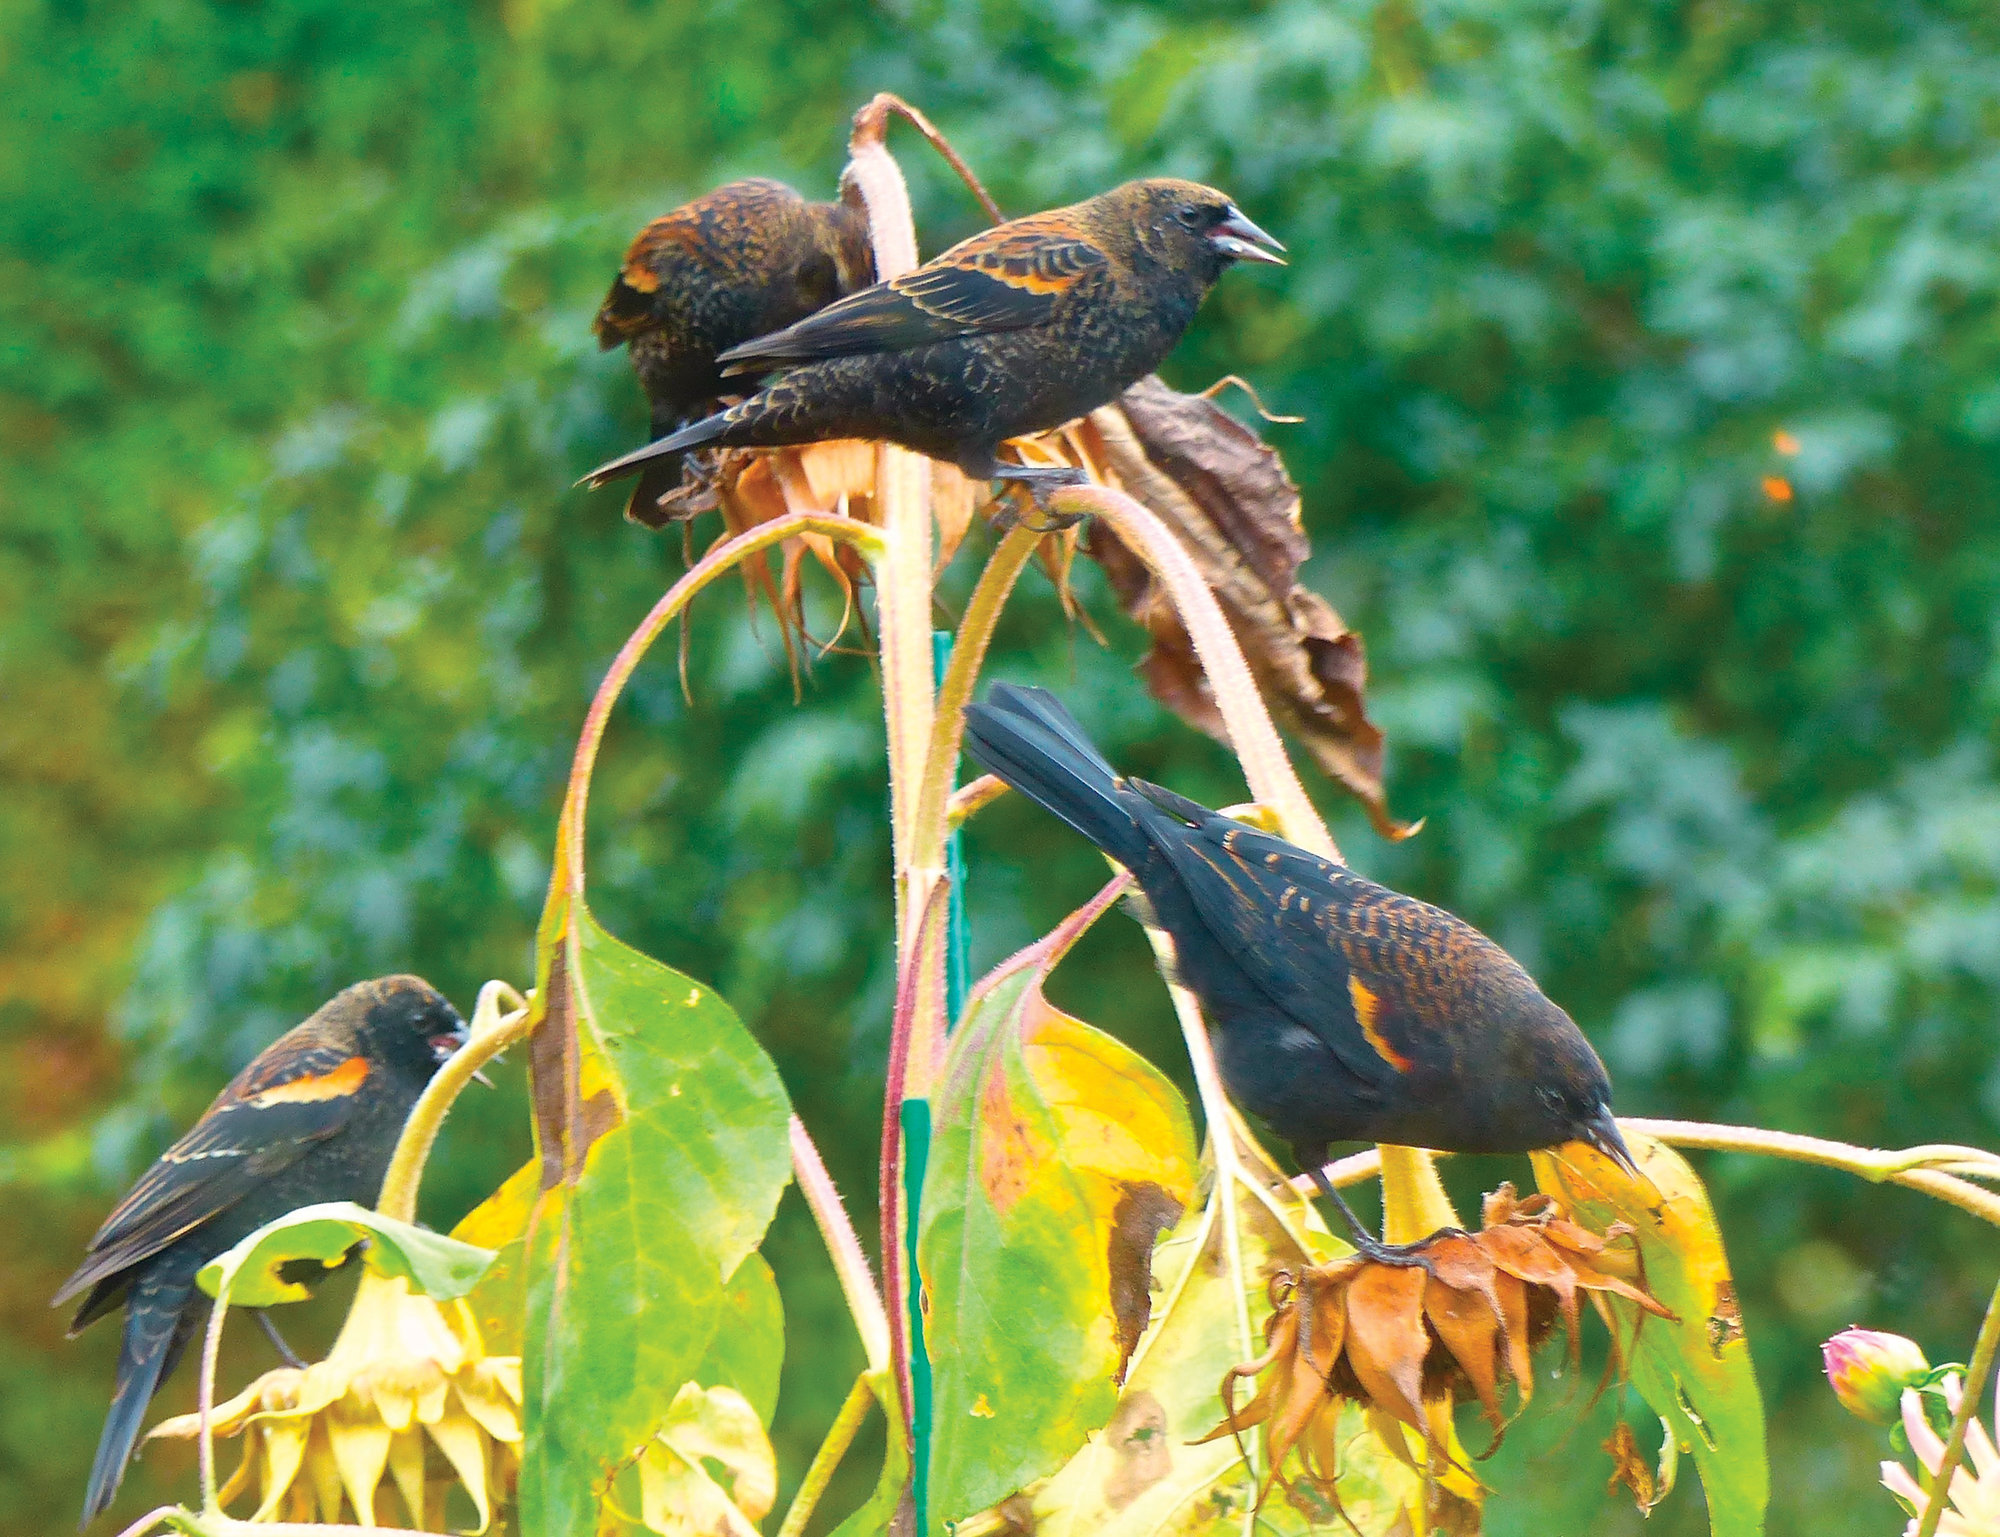 Blackbirds in Langley, Washington, feed from sunflower seed pods in a residential garden. A variety of landscape plants are important when creating wildlife habitat.